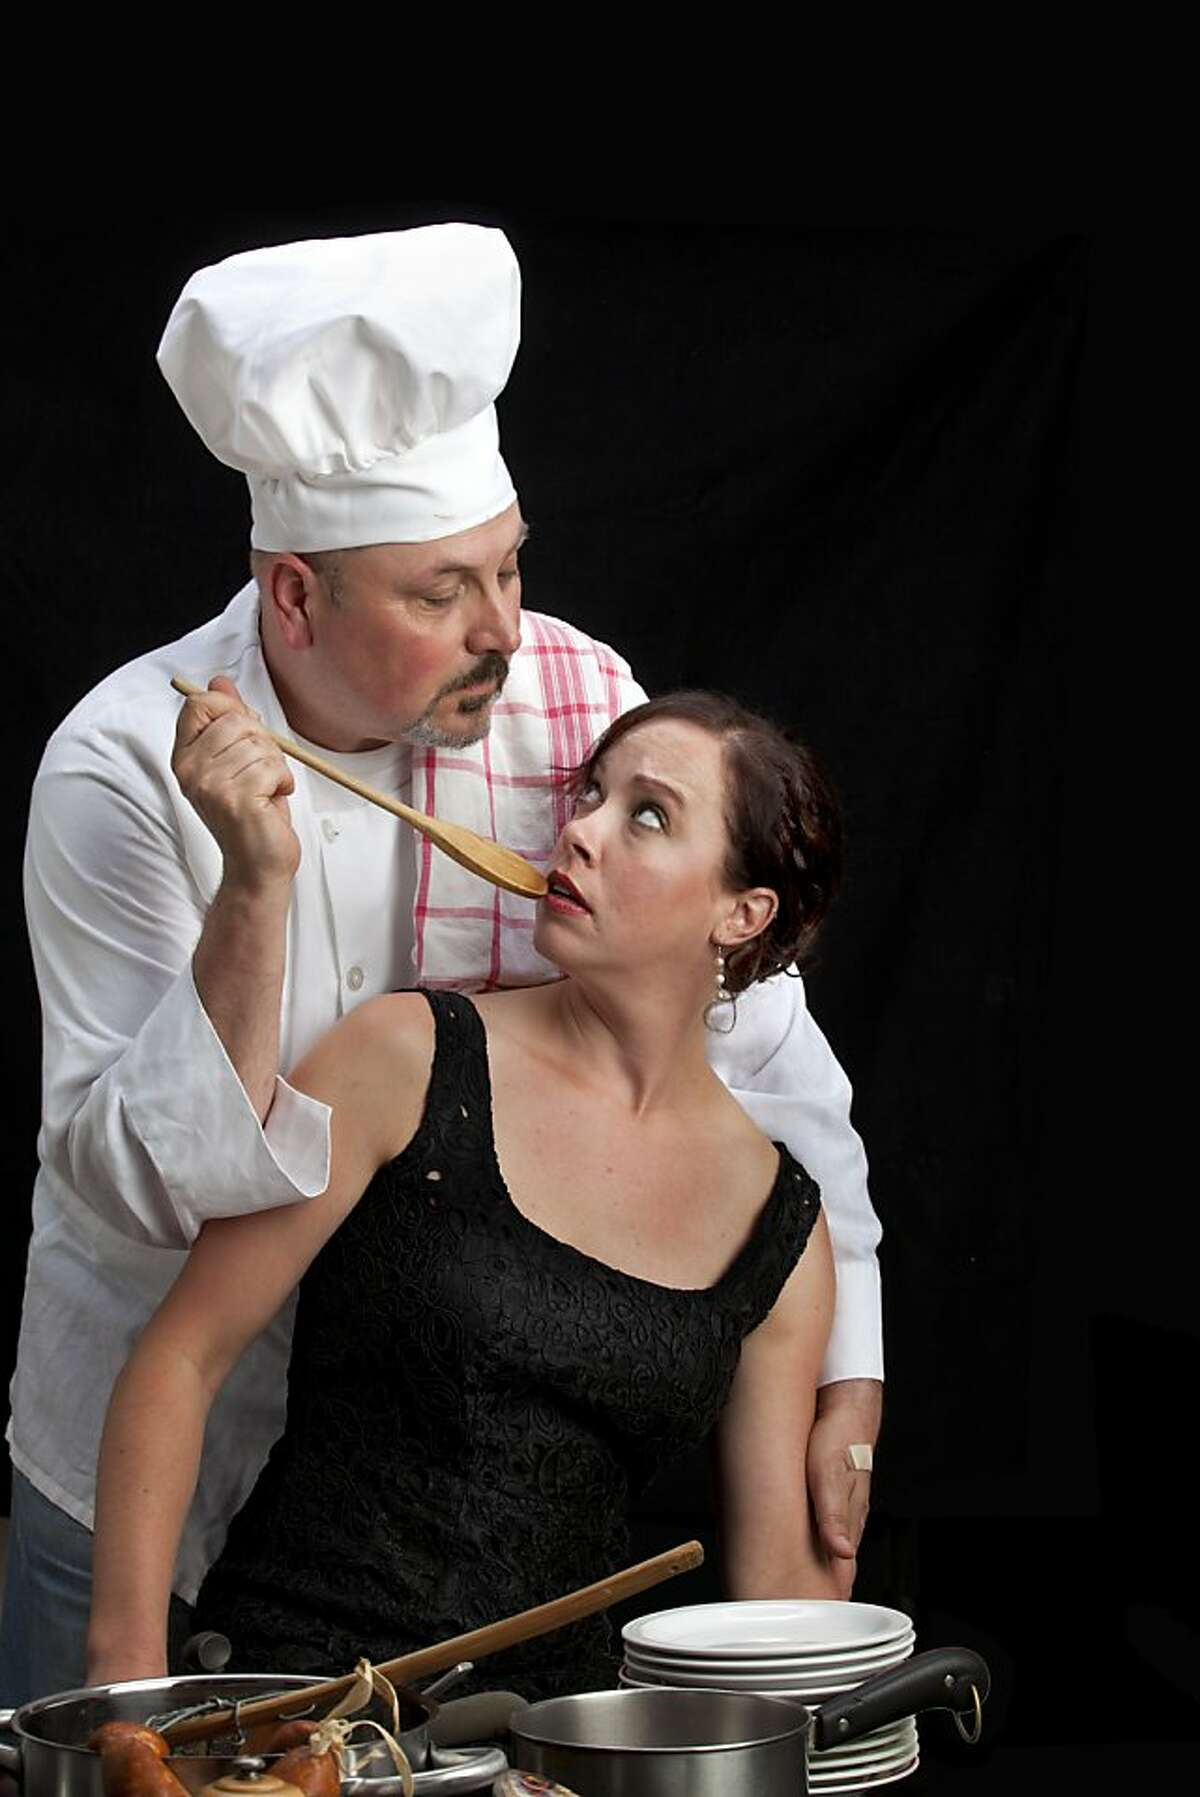 """Soren Oliver is chef Albert in """"Sorry Fugu,"""" a story by T.C. Boyle performed in Word for Word's """"Food Stories: Pleasure Is Pleasure"""" at Theater Artaud."""